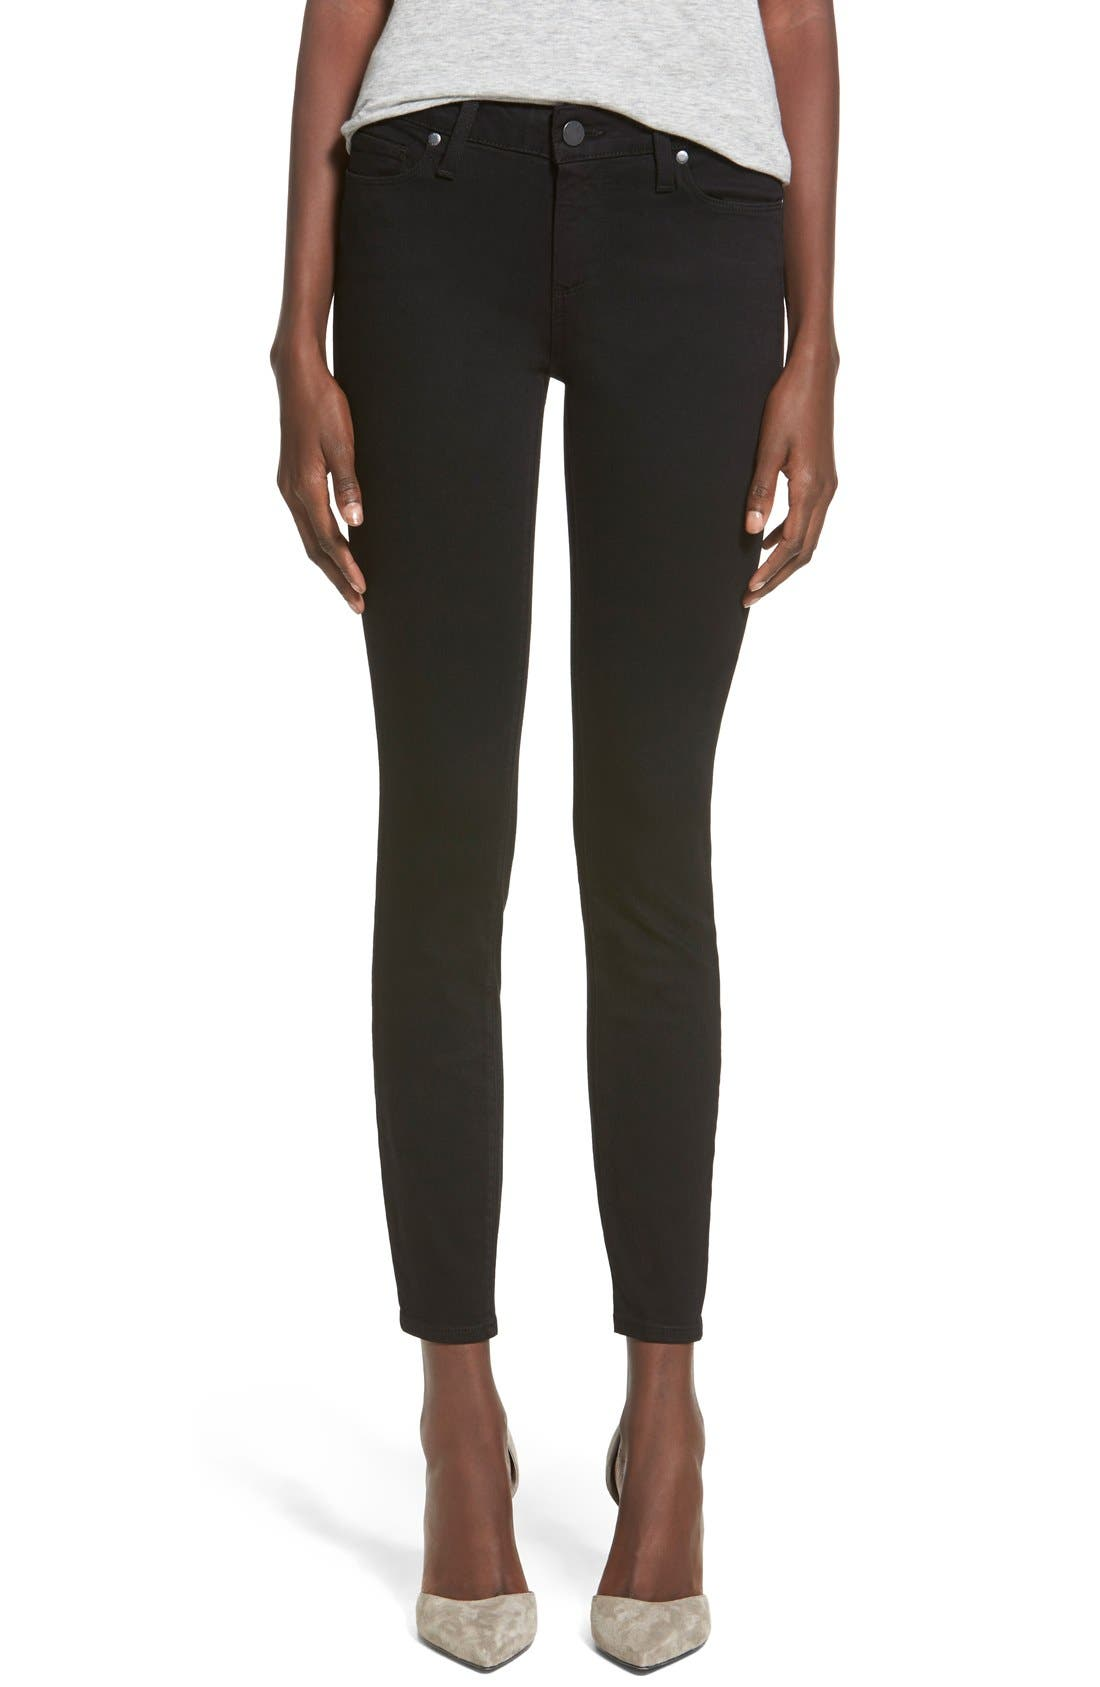 PAIGE Transcend - Verdugo Ankle Ultra Skinny Jeans